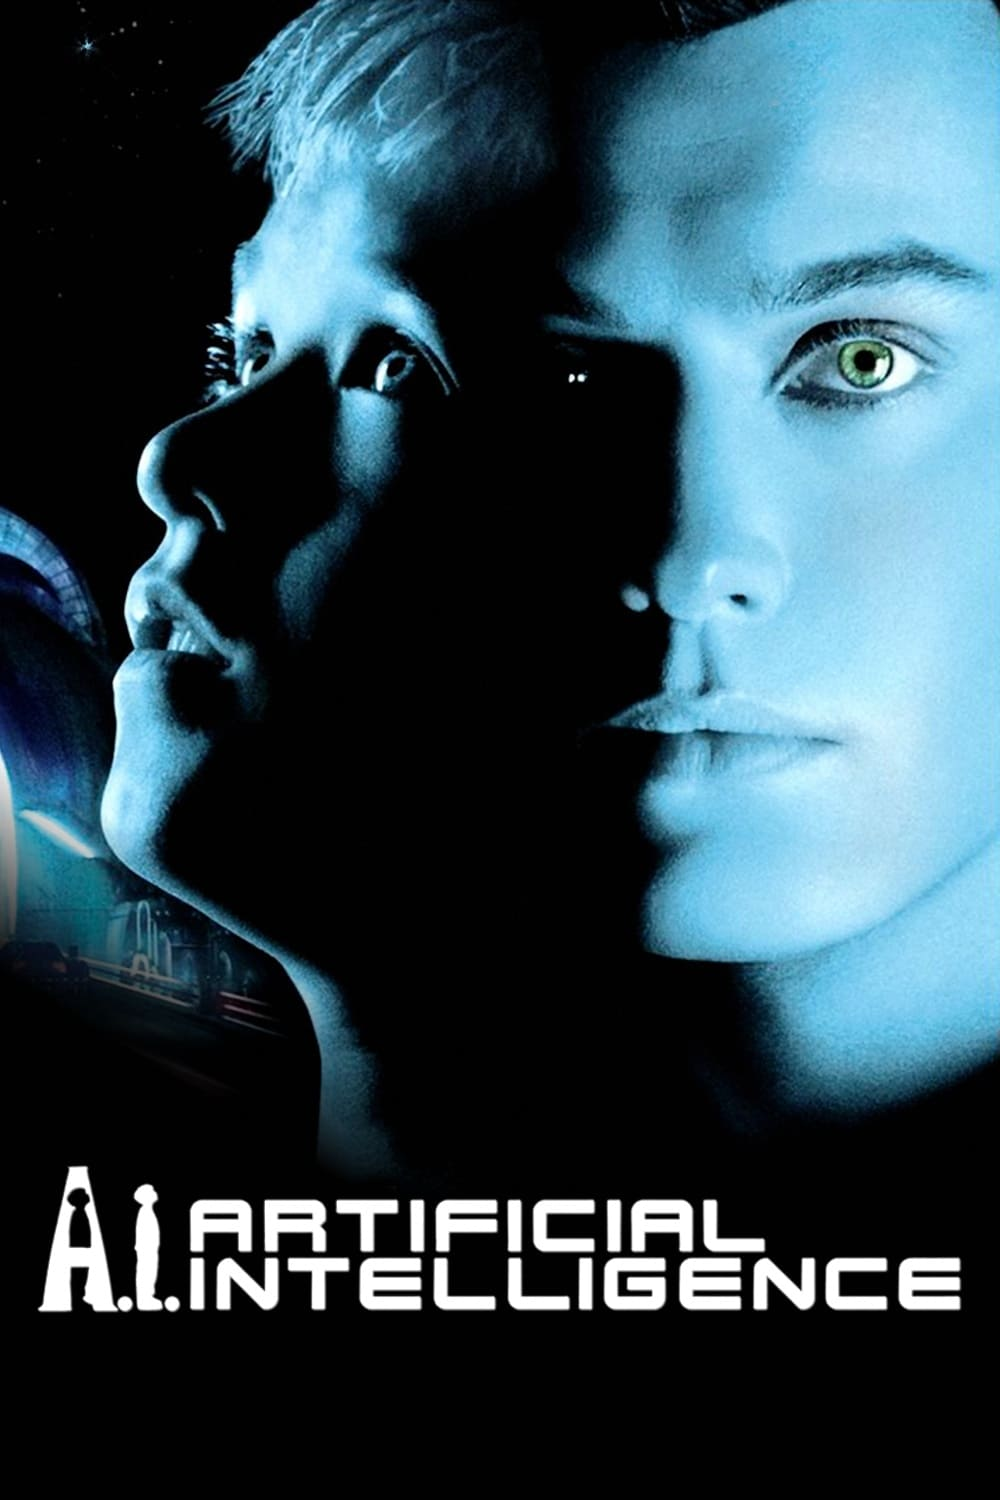 A I Artificial Intelligence 2001 Posters The Movie Database Tmdb